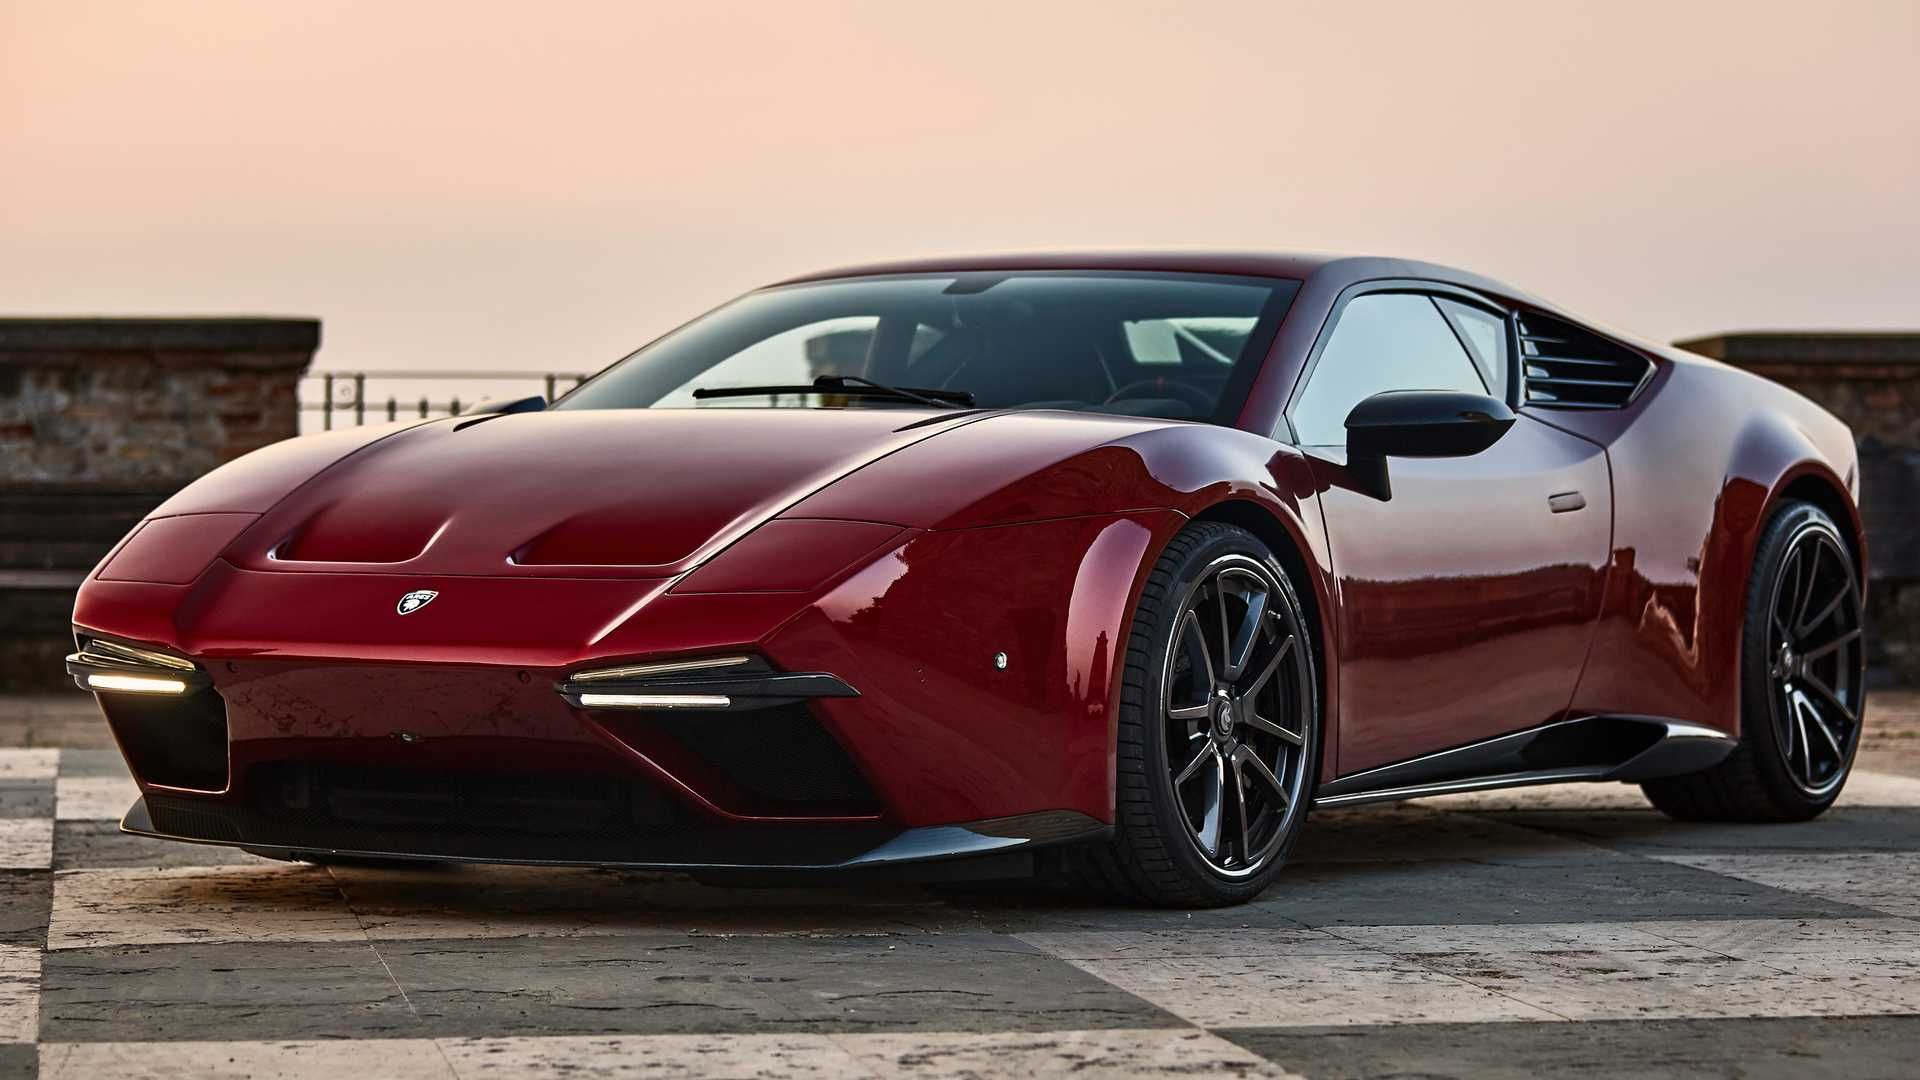 At This Point The Year 2019 Seems Like Centuries Ago But It S When We First Saw This Delectable Supercar The Ares Design Panther Made In 2020 Super Cars Pantera Ares